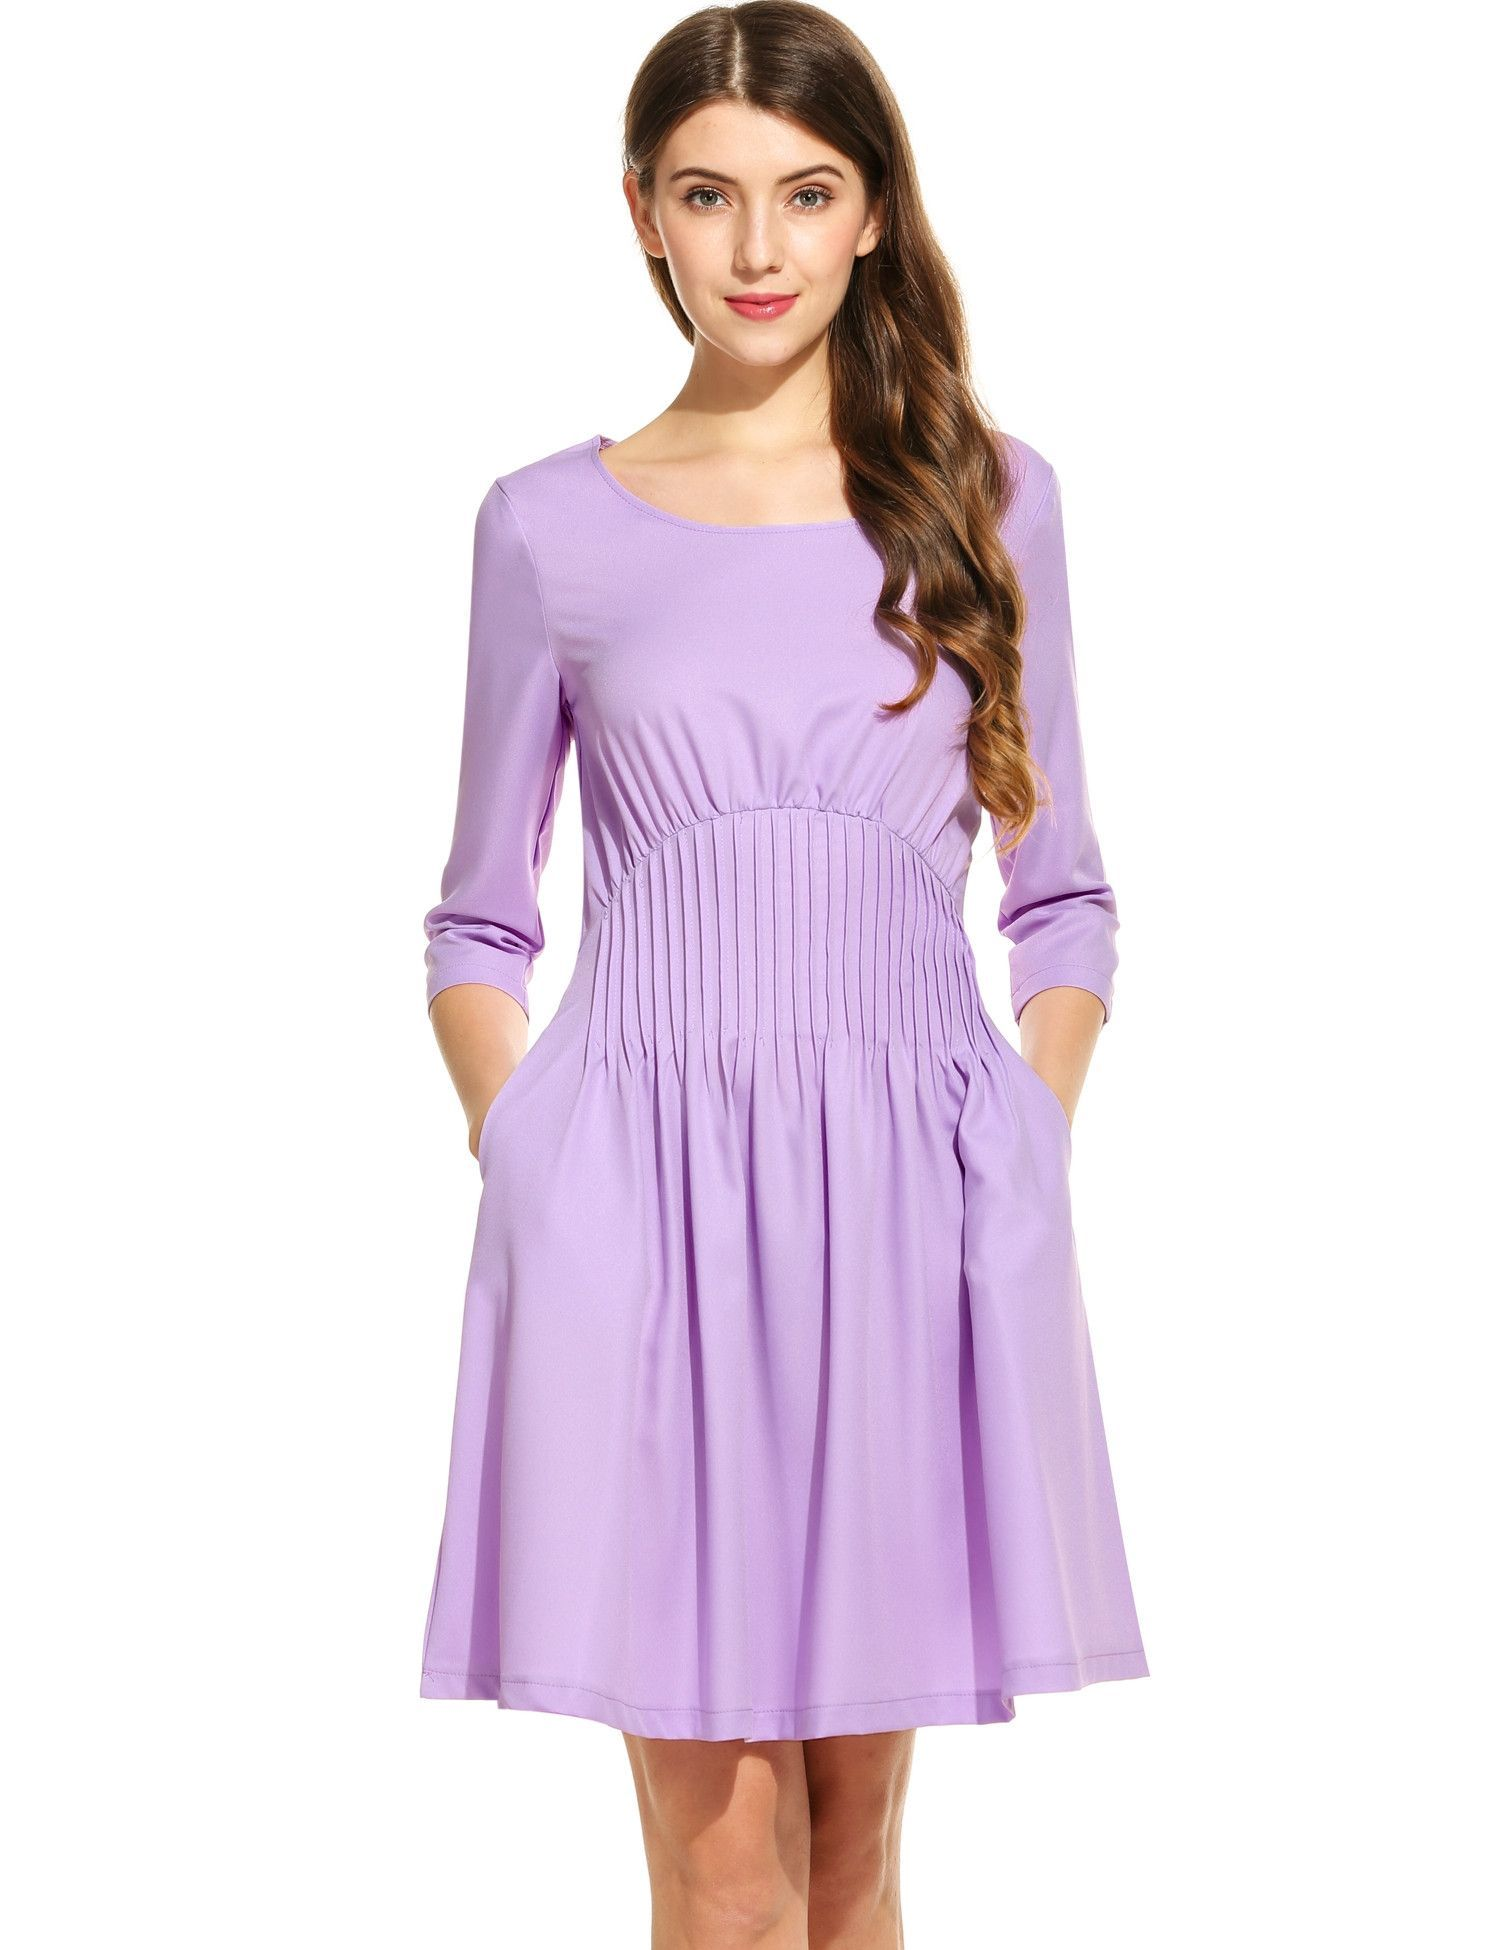 Purple Women 3/4 Sleeve Solid O Neck Pullover Tunic Casual Dresses